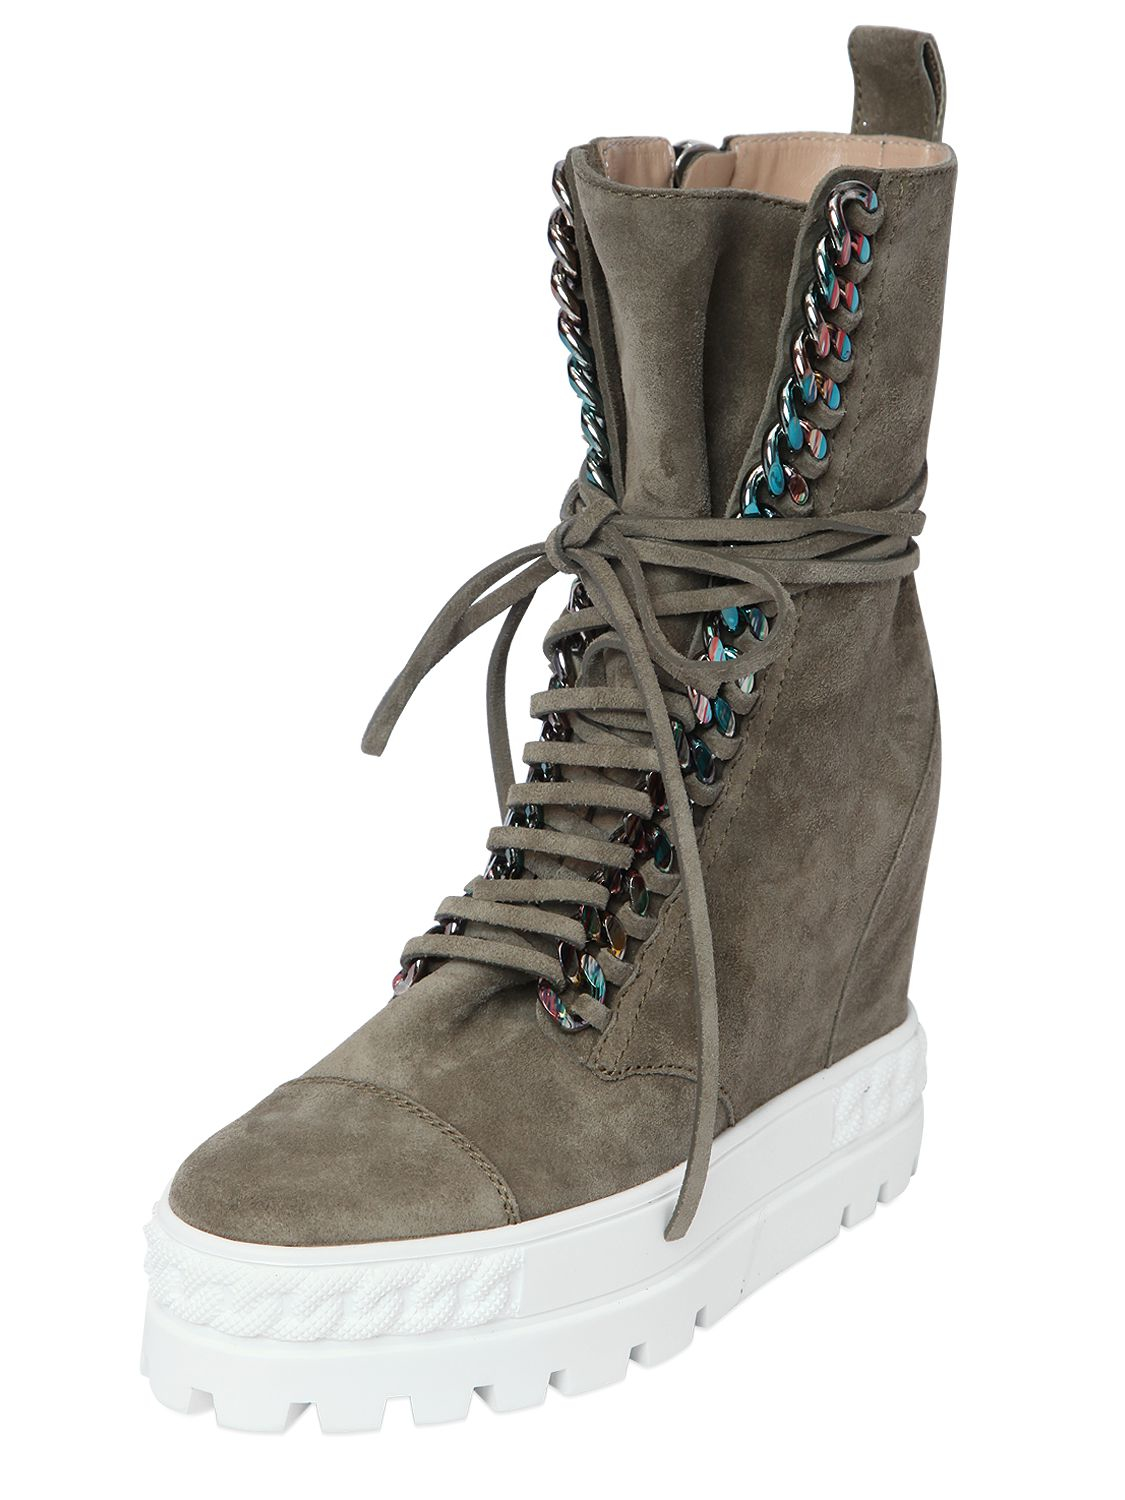 Casadei 110mm Suede Wedge Sneakers W/ Chain Trim in Khaki (Natural)